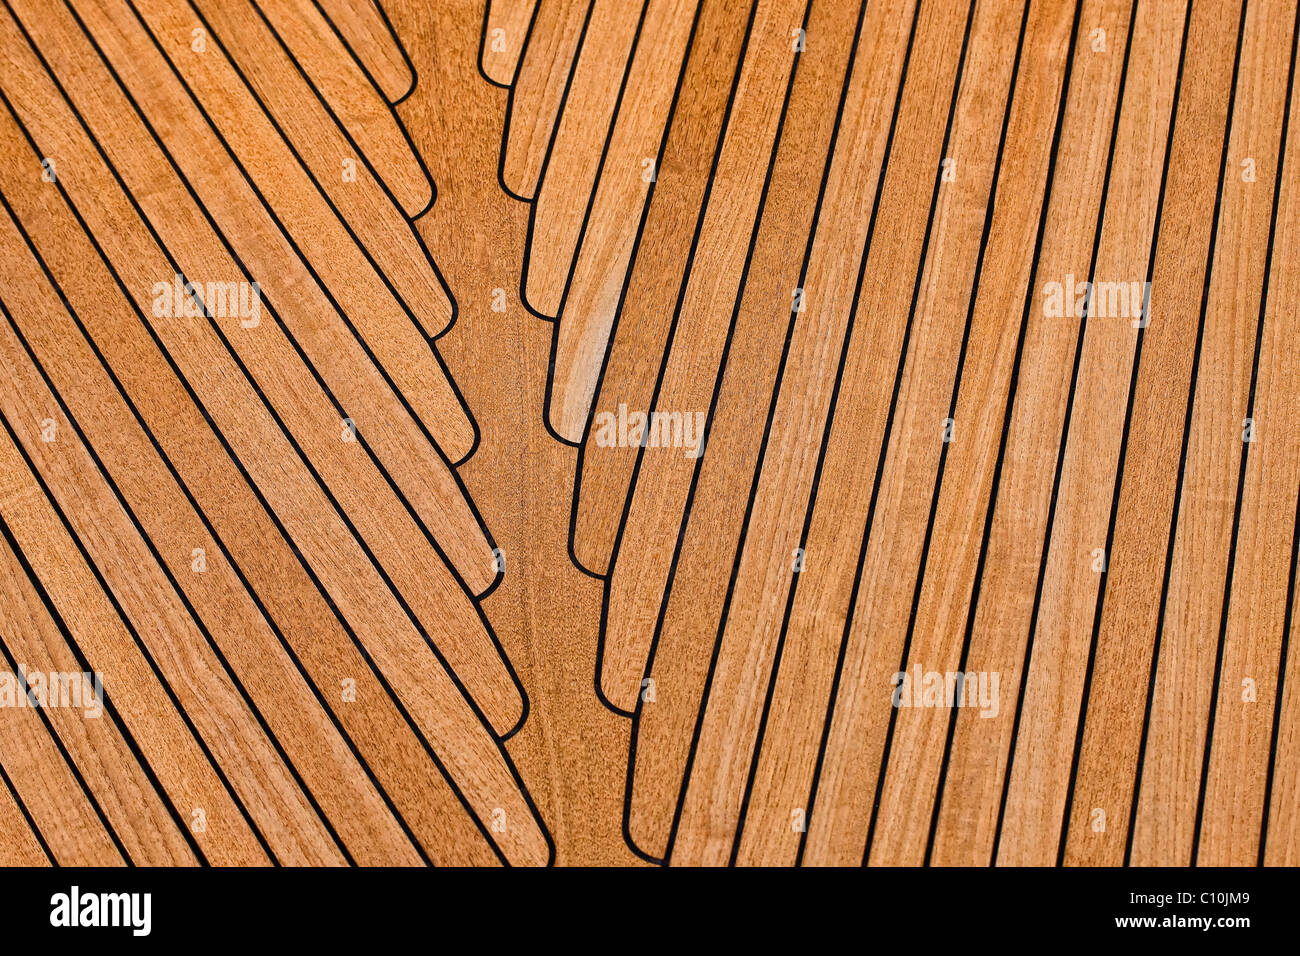 Wooden boat deck - Stock Image